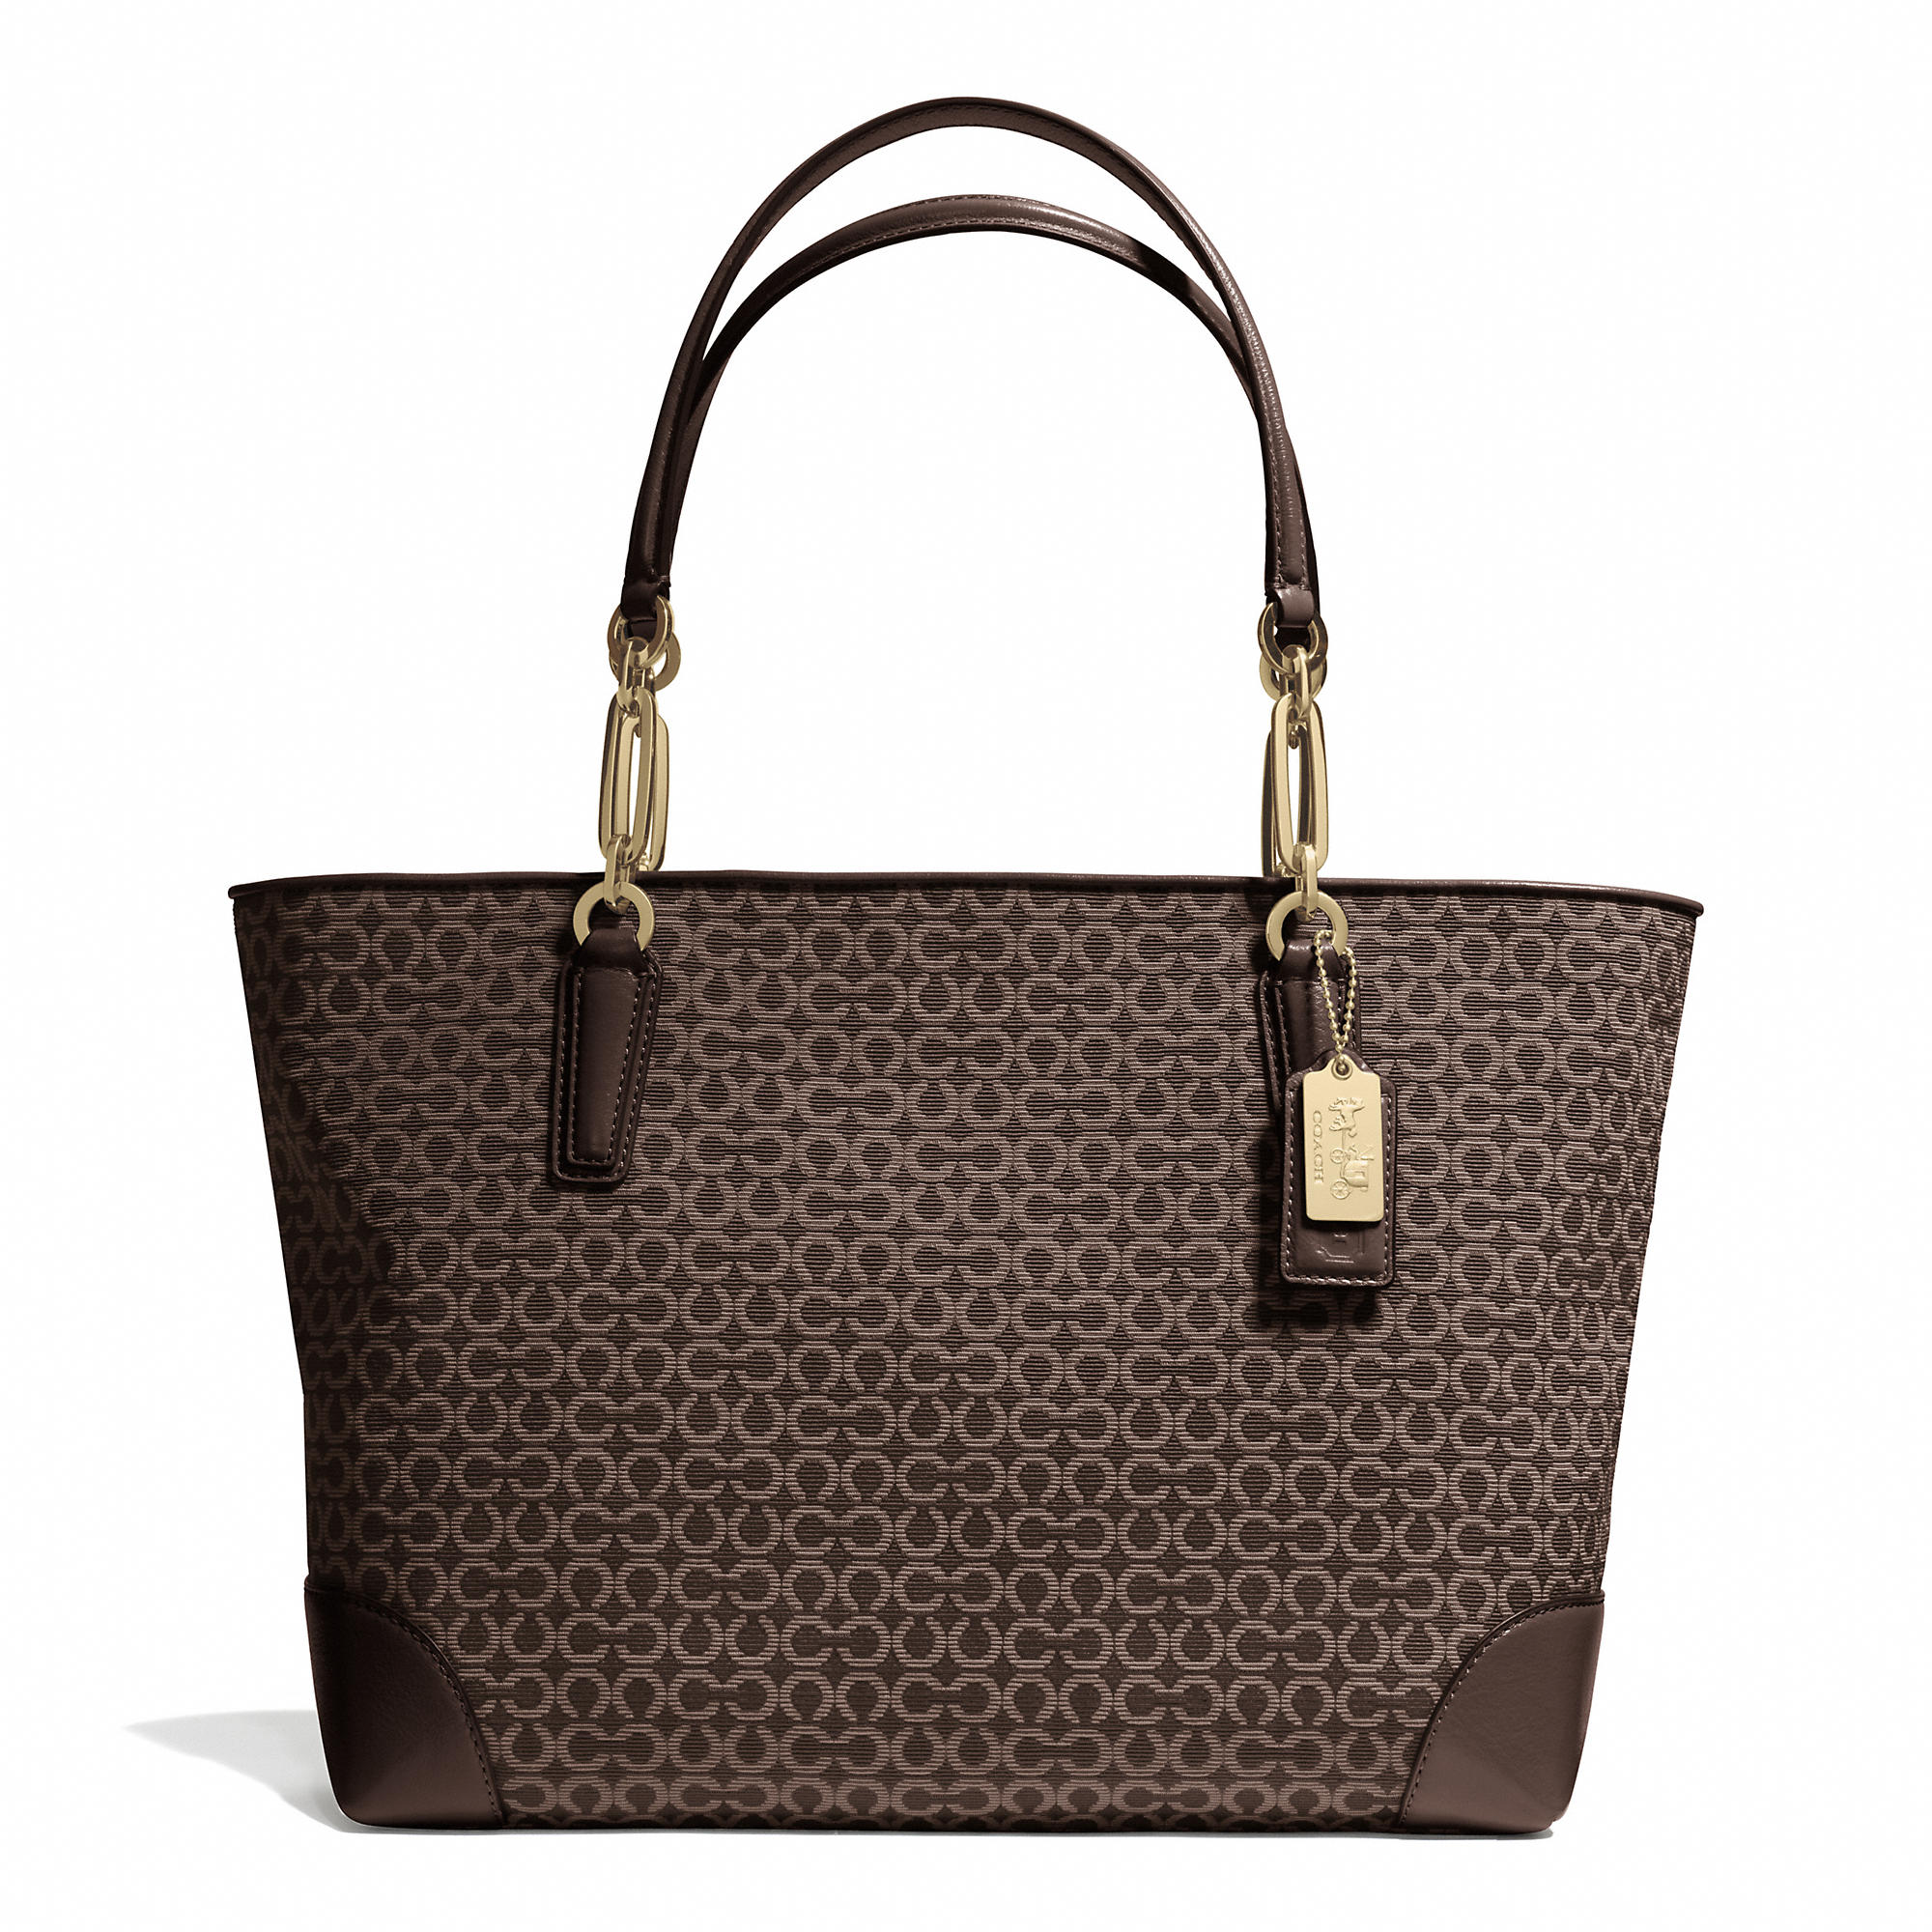 Sturdy material that allows the bag to stand. The leather looks exquisite!  Image from COACH. Buy directly from COACH here. f14b2b4a84af8